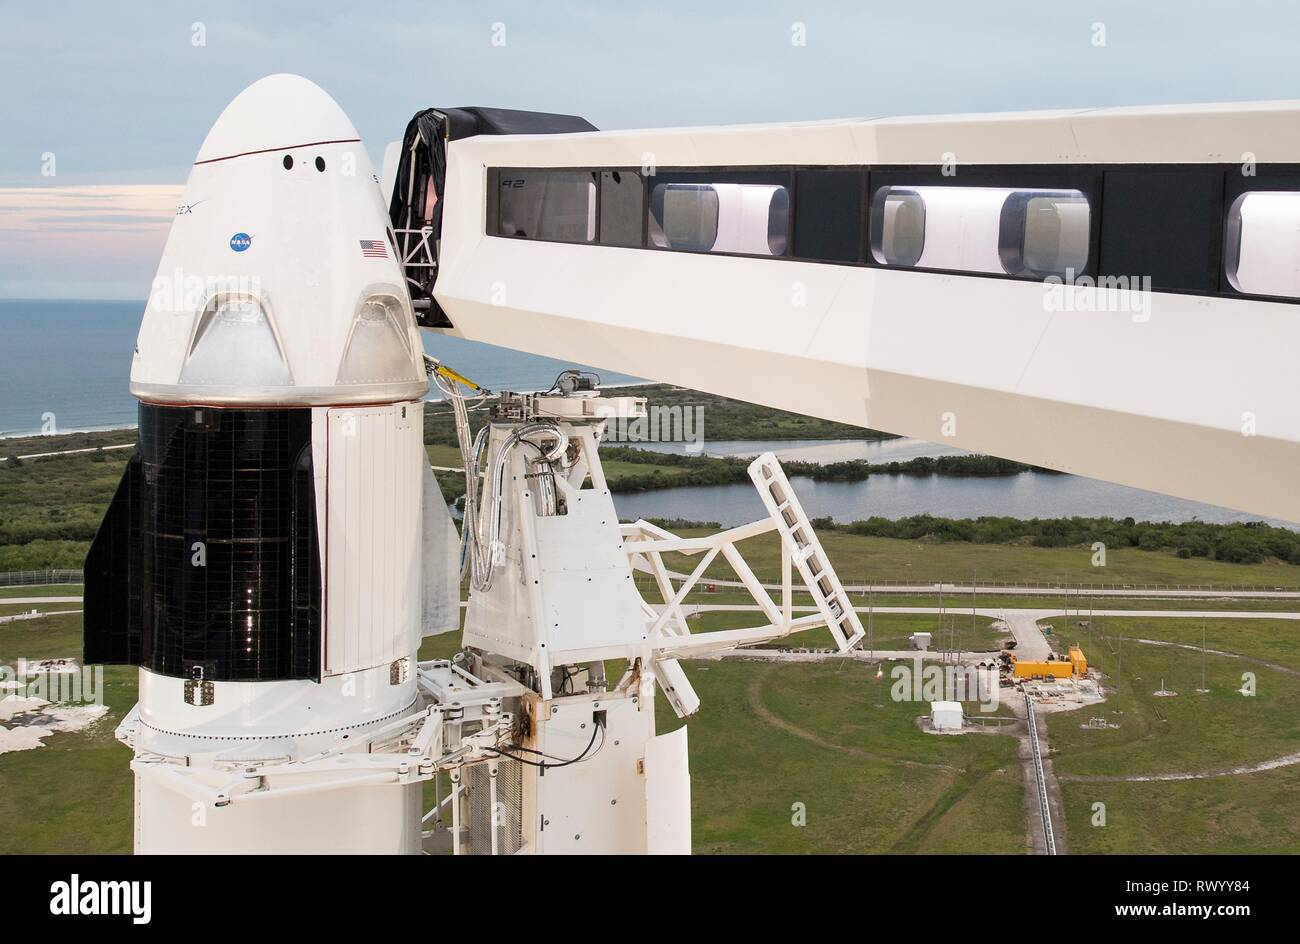 The SpaceX Crew Dragon spacecraft atop the Falcon 9 rocket and crew access way on the launch pad of Launch Complex 39A ready the launch of the Demo-1 mission at the Kennedy Space Center March 1, 2019 in Cape Canaveral, Florida. - Stock Image